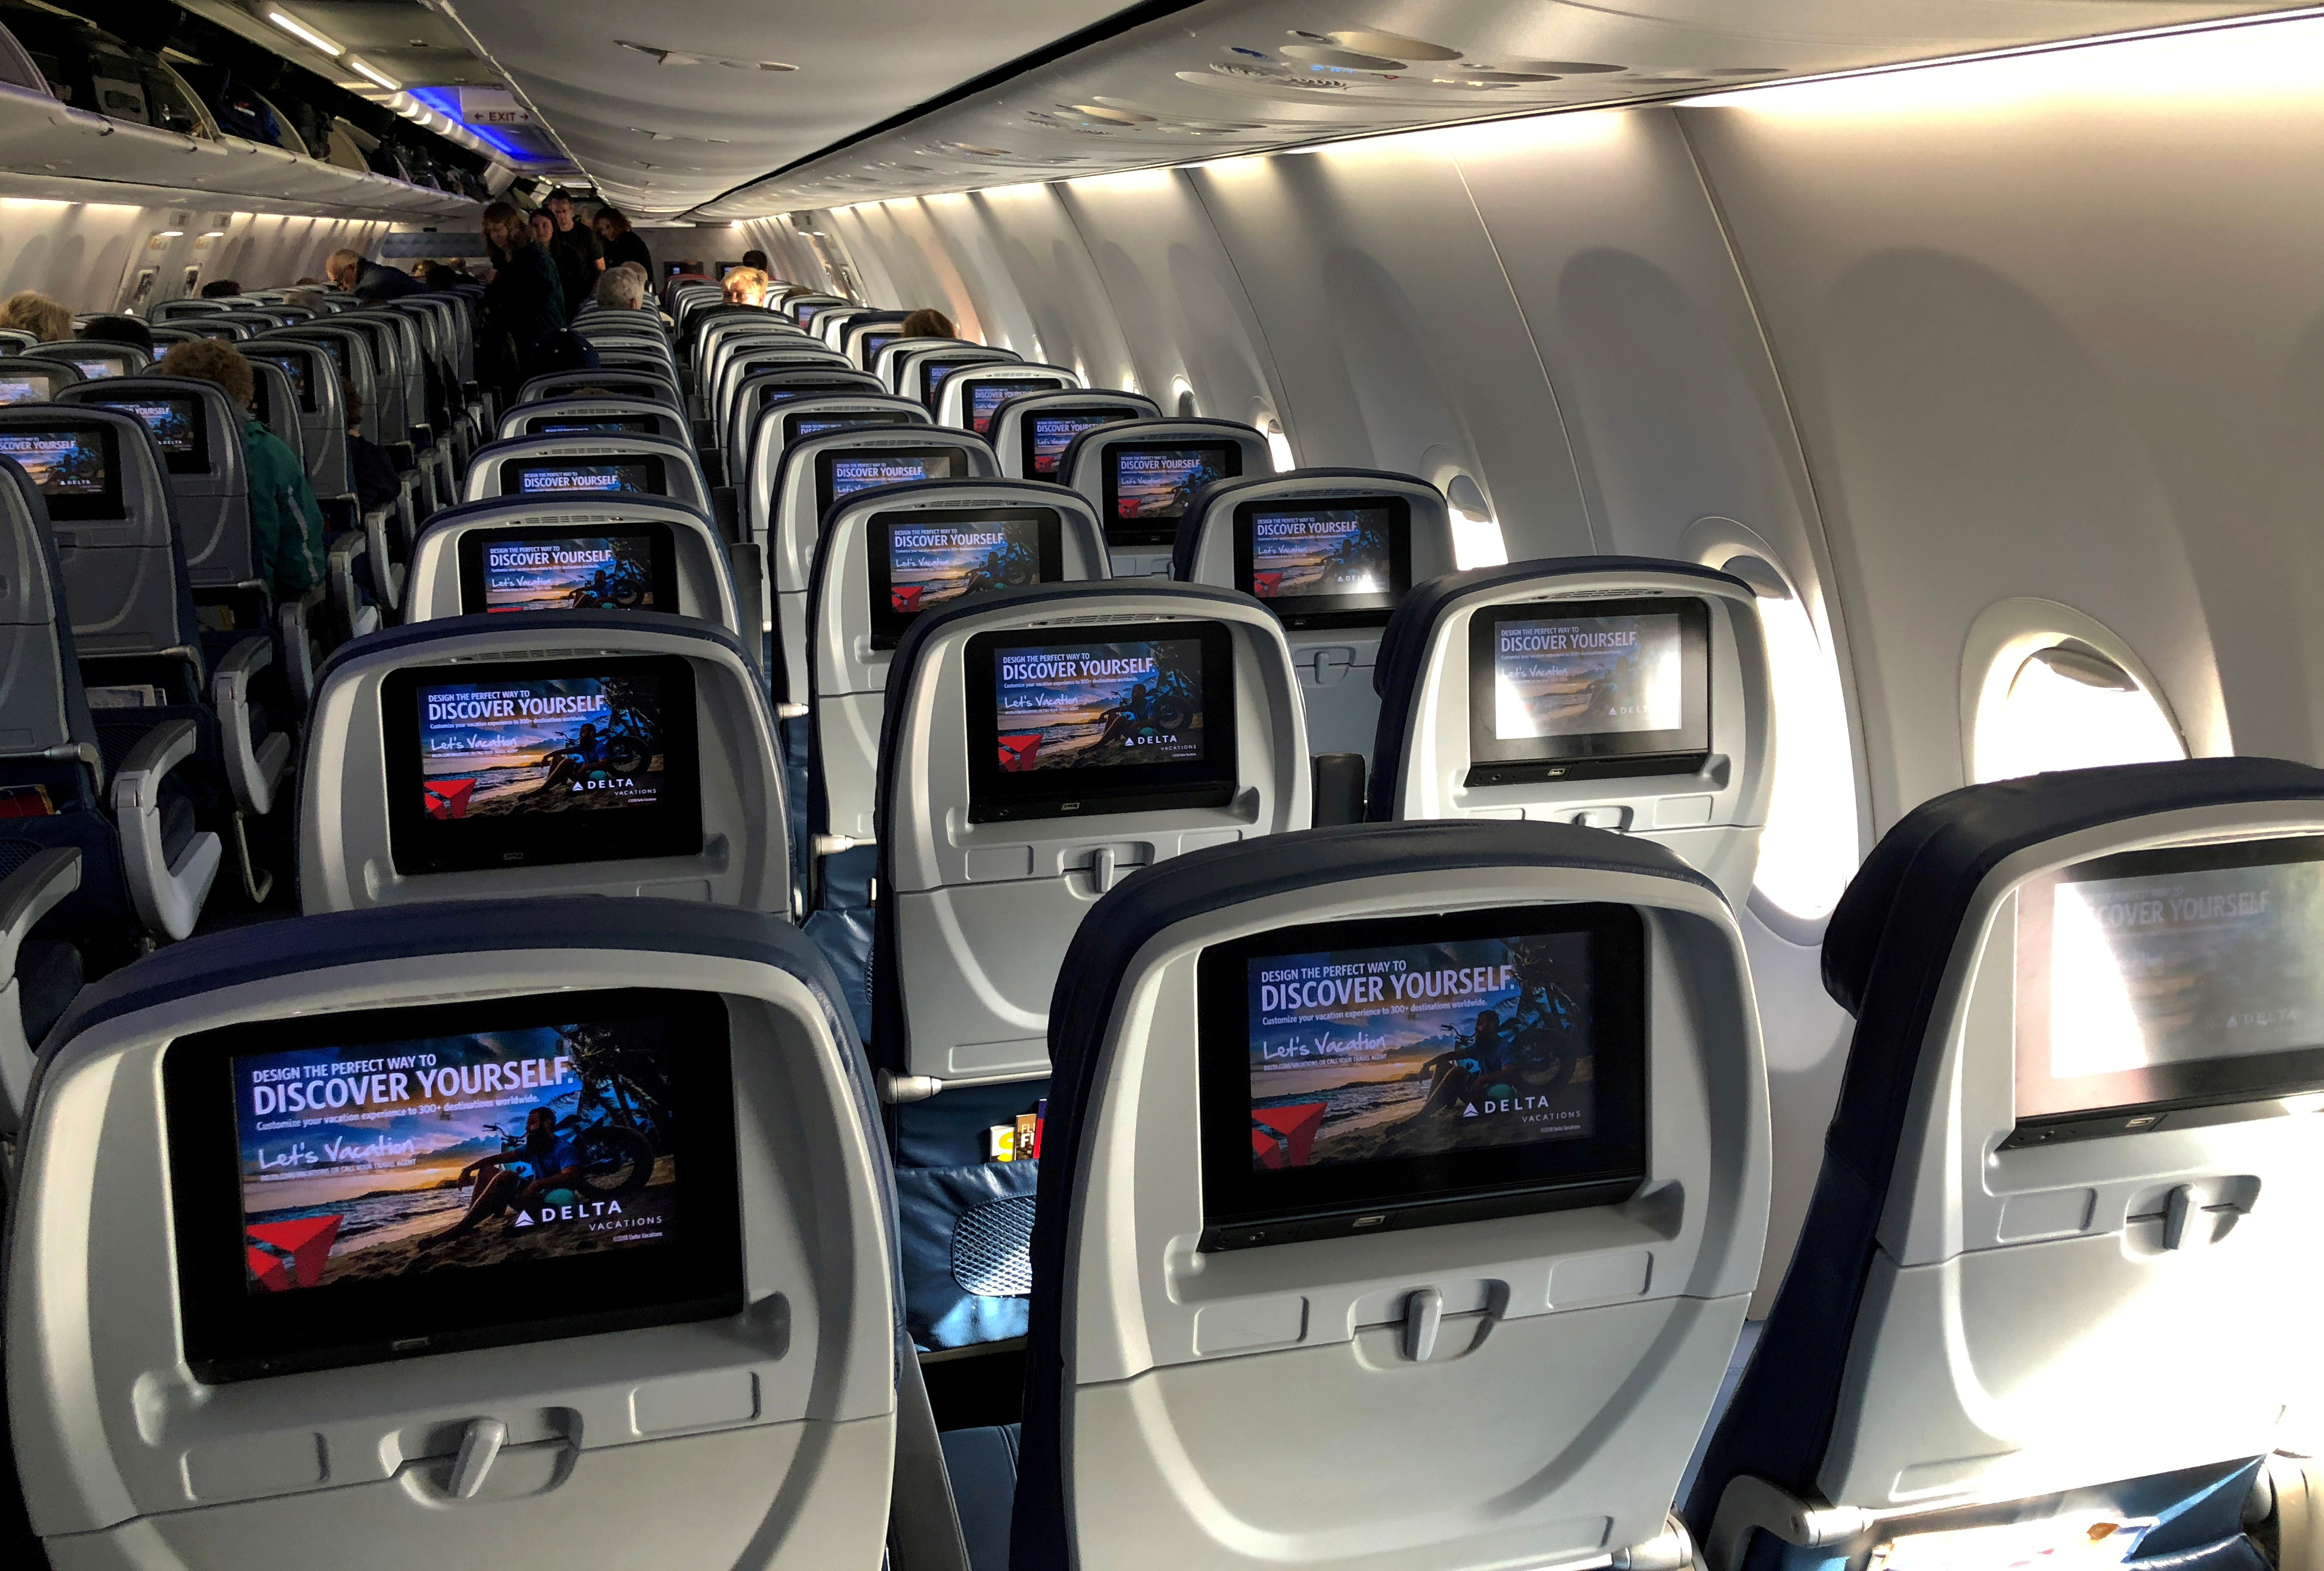 Video screens are shown built into the backs of passenger seats on board a Delta Airlines Boeing 737-900ER aircraft in San Diego, California, U.S., January 10, 2018.  REUTERS/Mike Blake